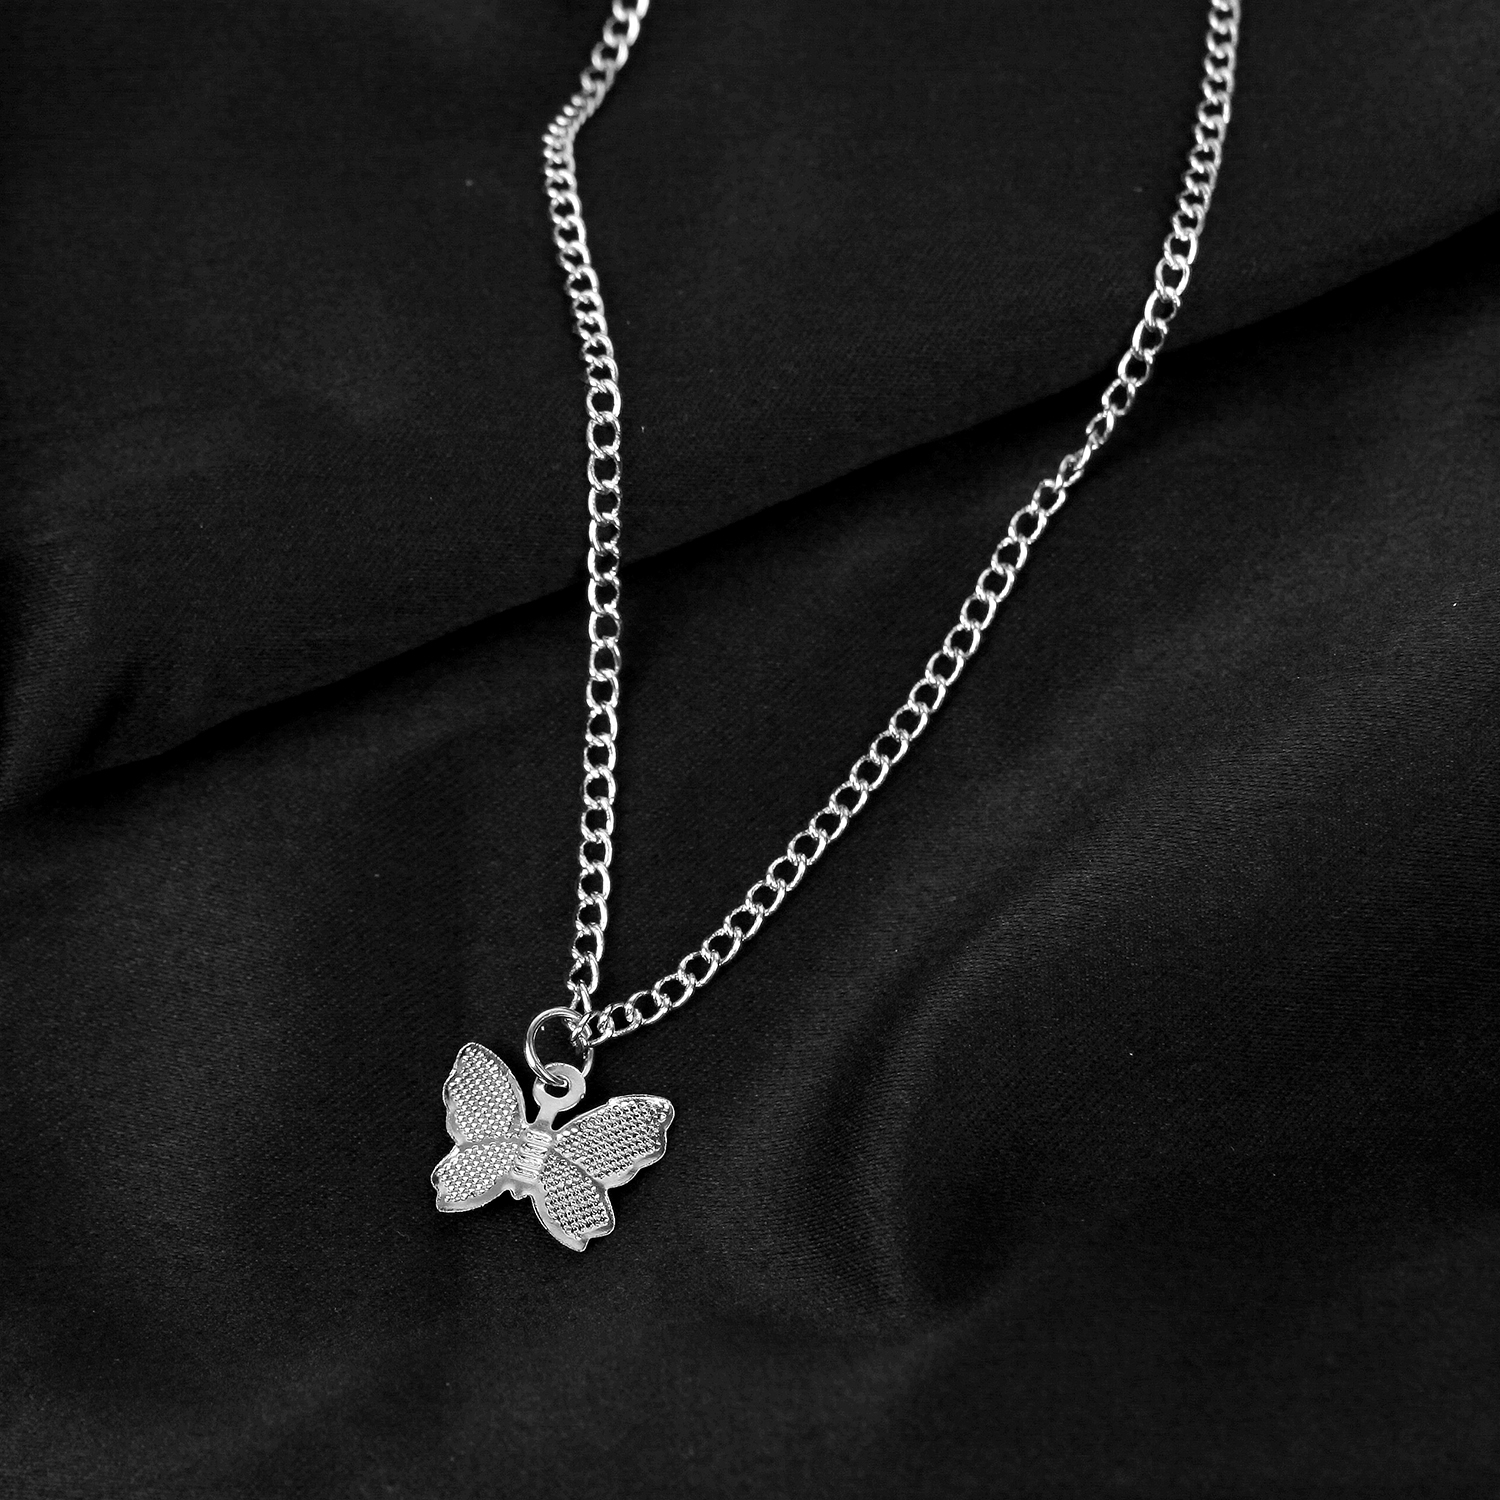 butterfly chain necklace gold